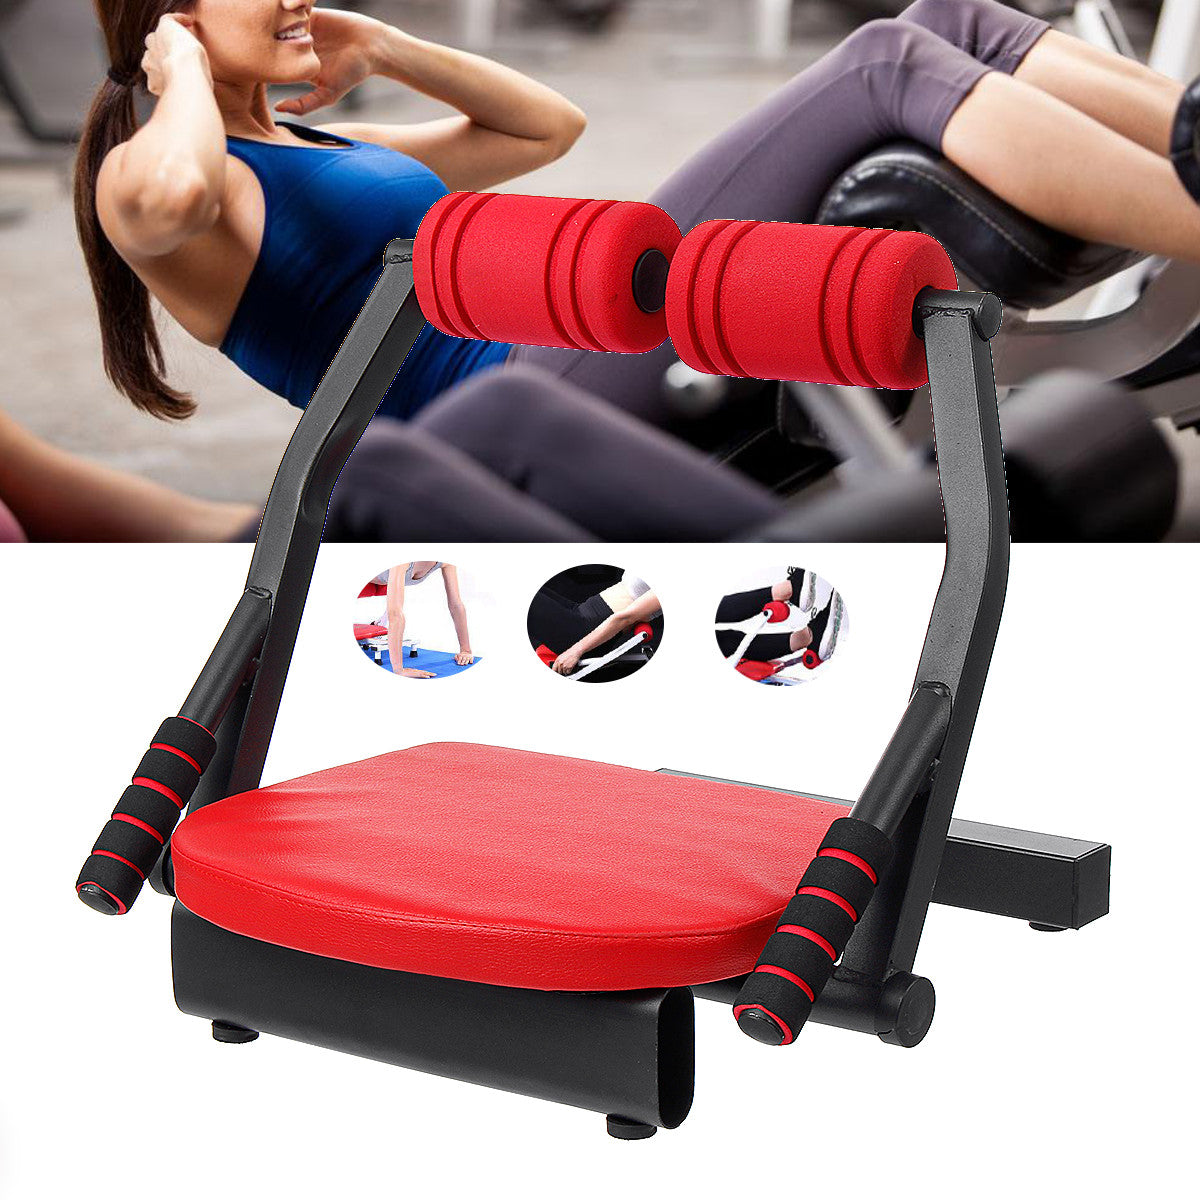 6 in 1 Sit-ups Cruncher Buiktrainer Machine Body Fitness Taille Kracht Oefening Tools